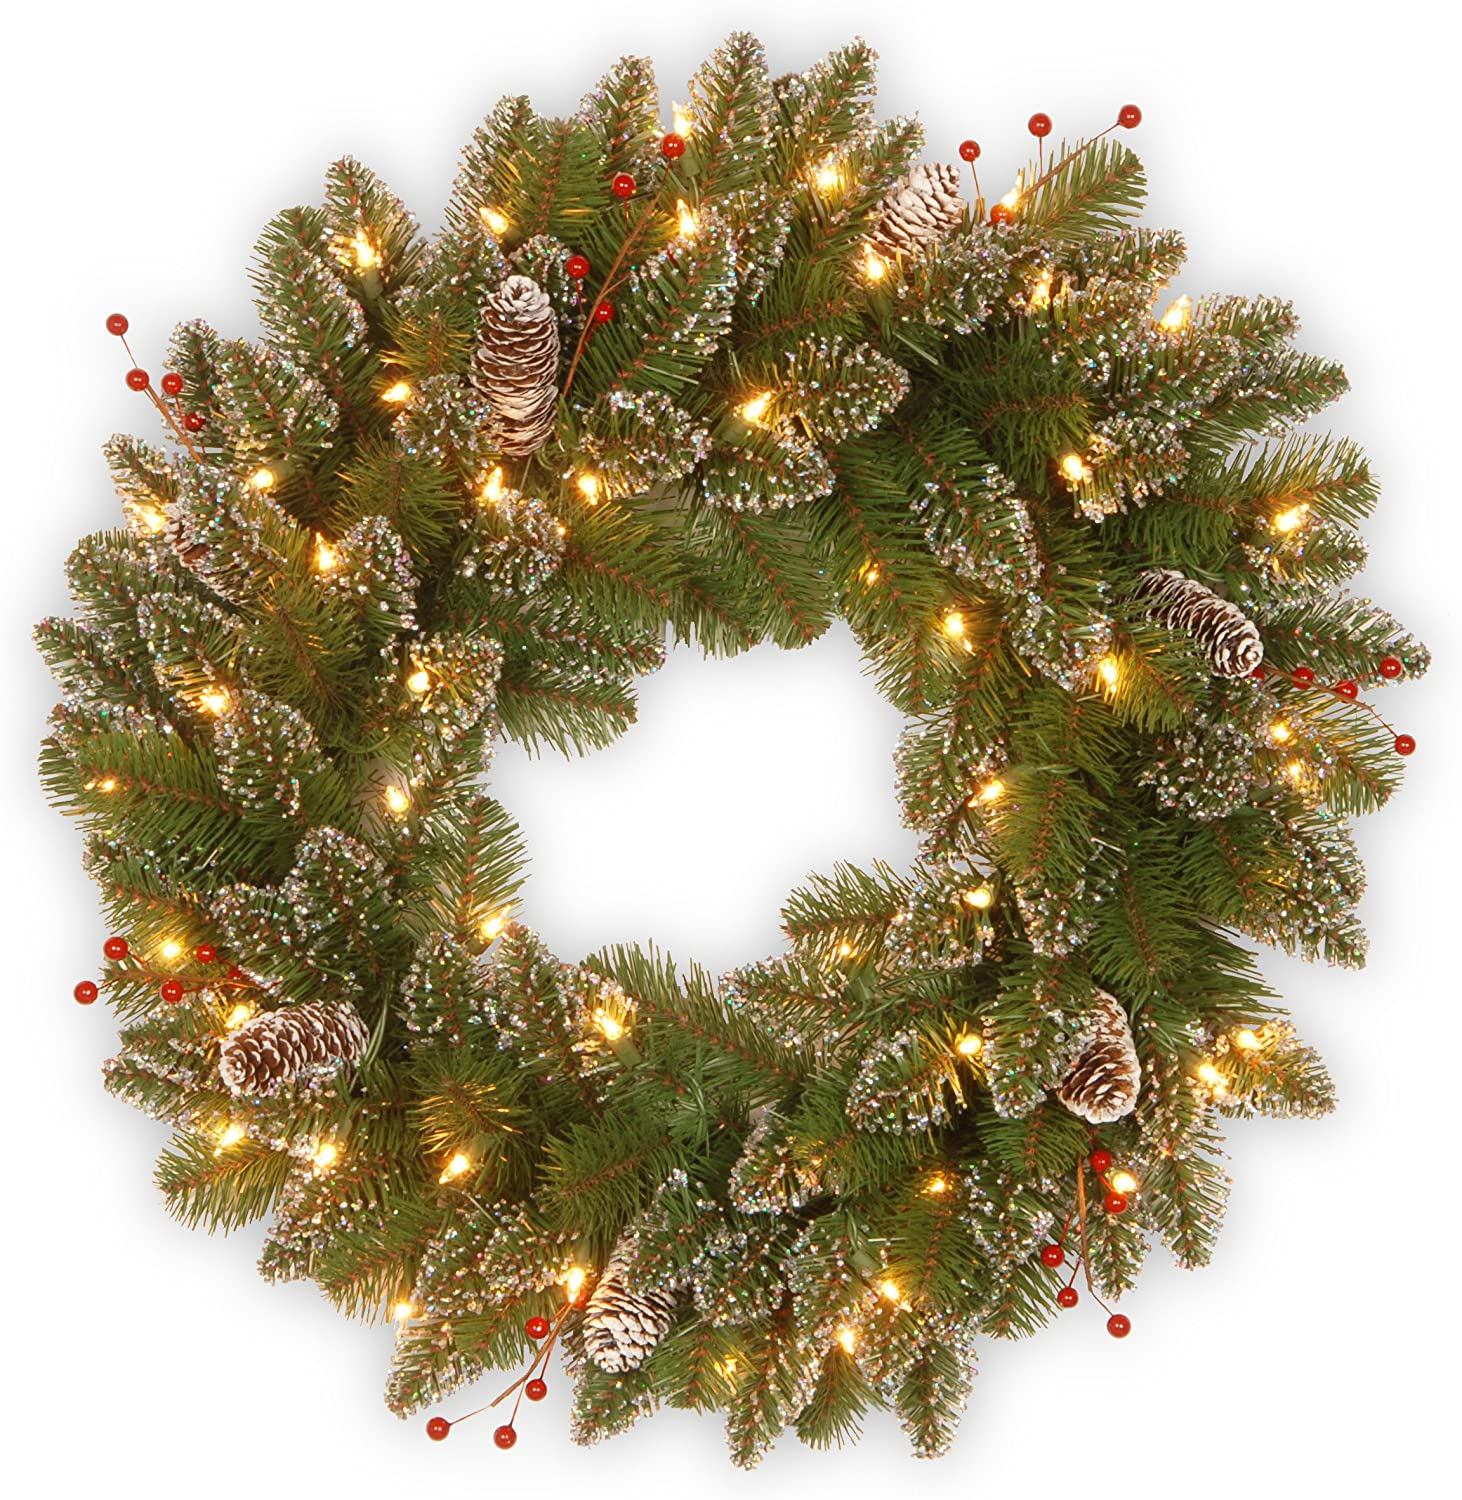 National Tree 24 Inch Glittery Mountain Spruce Wreath With White Tipped Cones Red Berries And 50 Battery Operated Warm White Led Lights With Timer Glm1 300 24w B1 Home Kitchen